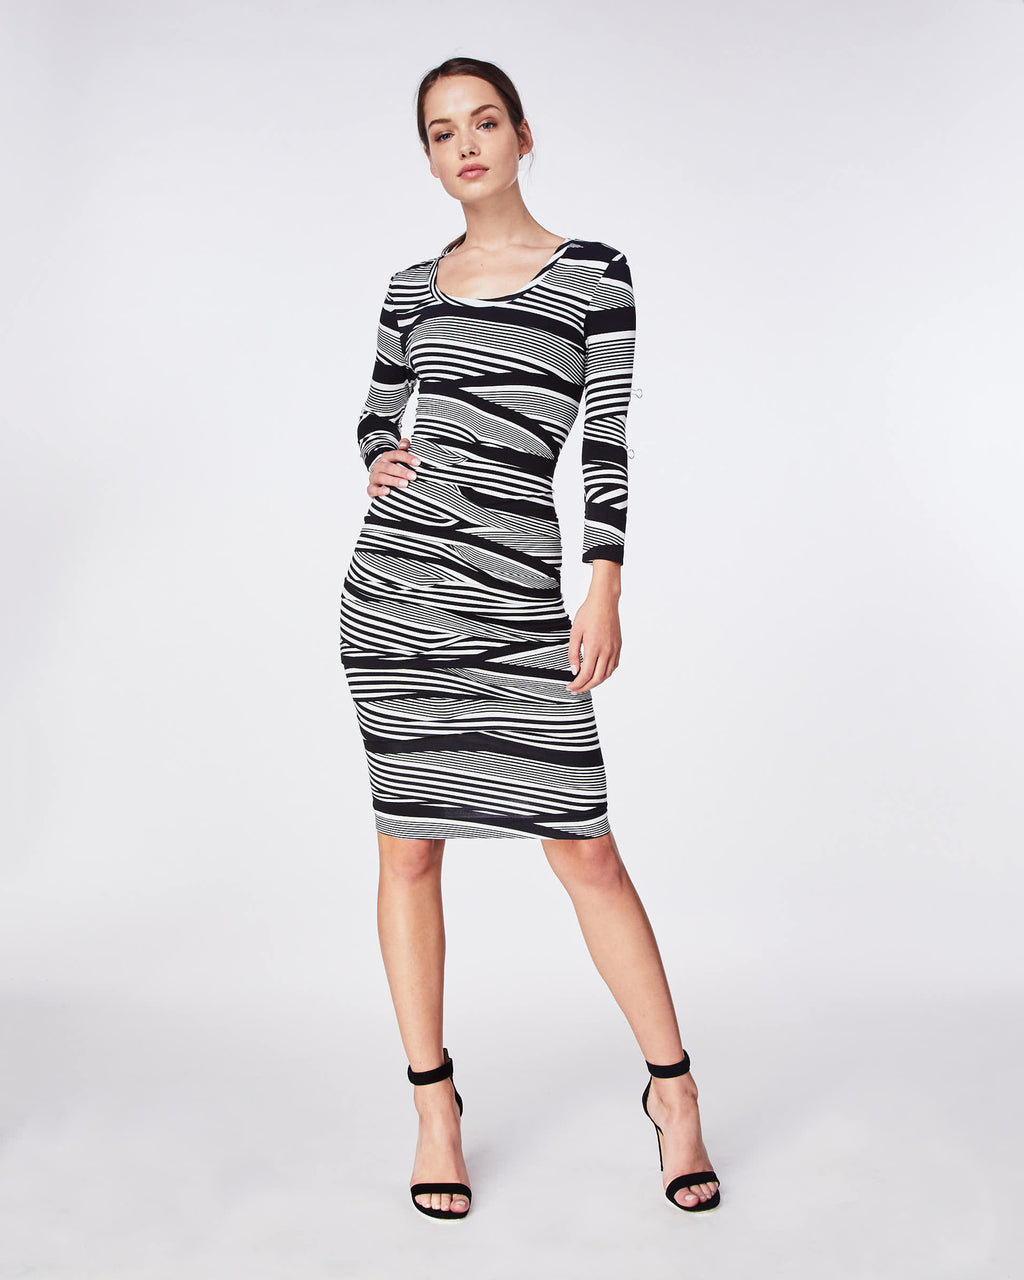 BH10432 - WAVY STRIPE SCOOP NECK TUCK DRESS - dresses - short - This scoop neck dress has 3/4 sleeves and a lot of attitude. The stretchy knit feels super comfortable and elegantly frames your figure, while the front tuck adds to the effect.